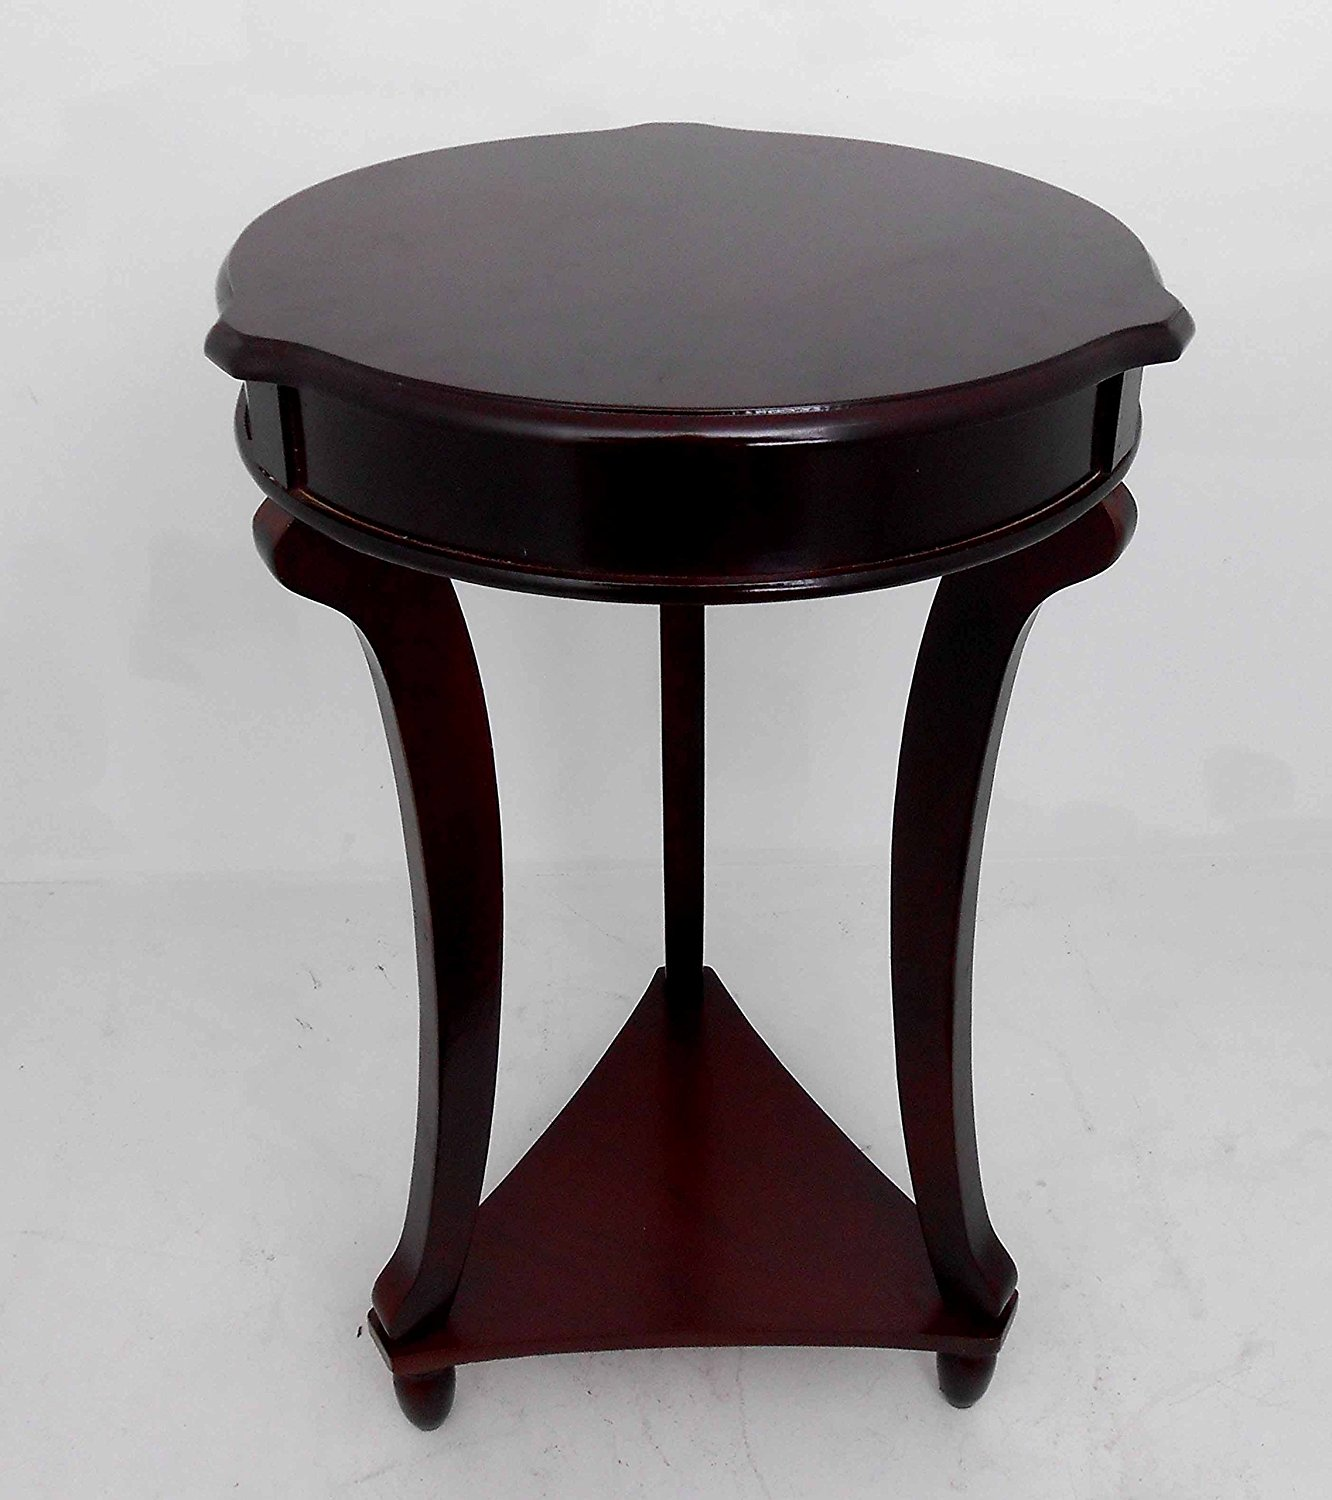 round decorative table find brown accent get quotations tables end telephone plant home iron and chairs modern wood coffee plexiglass nesting set target threshold cabinet black